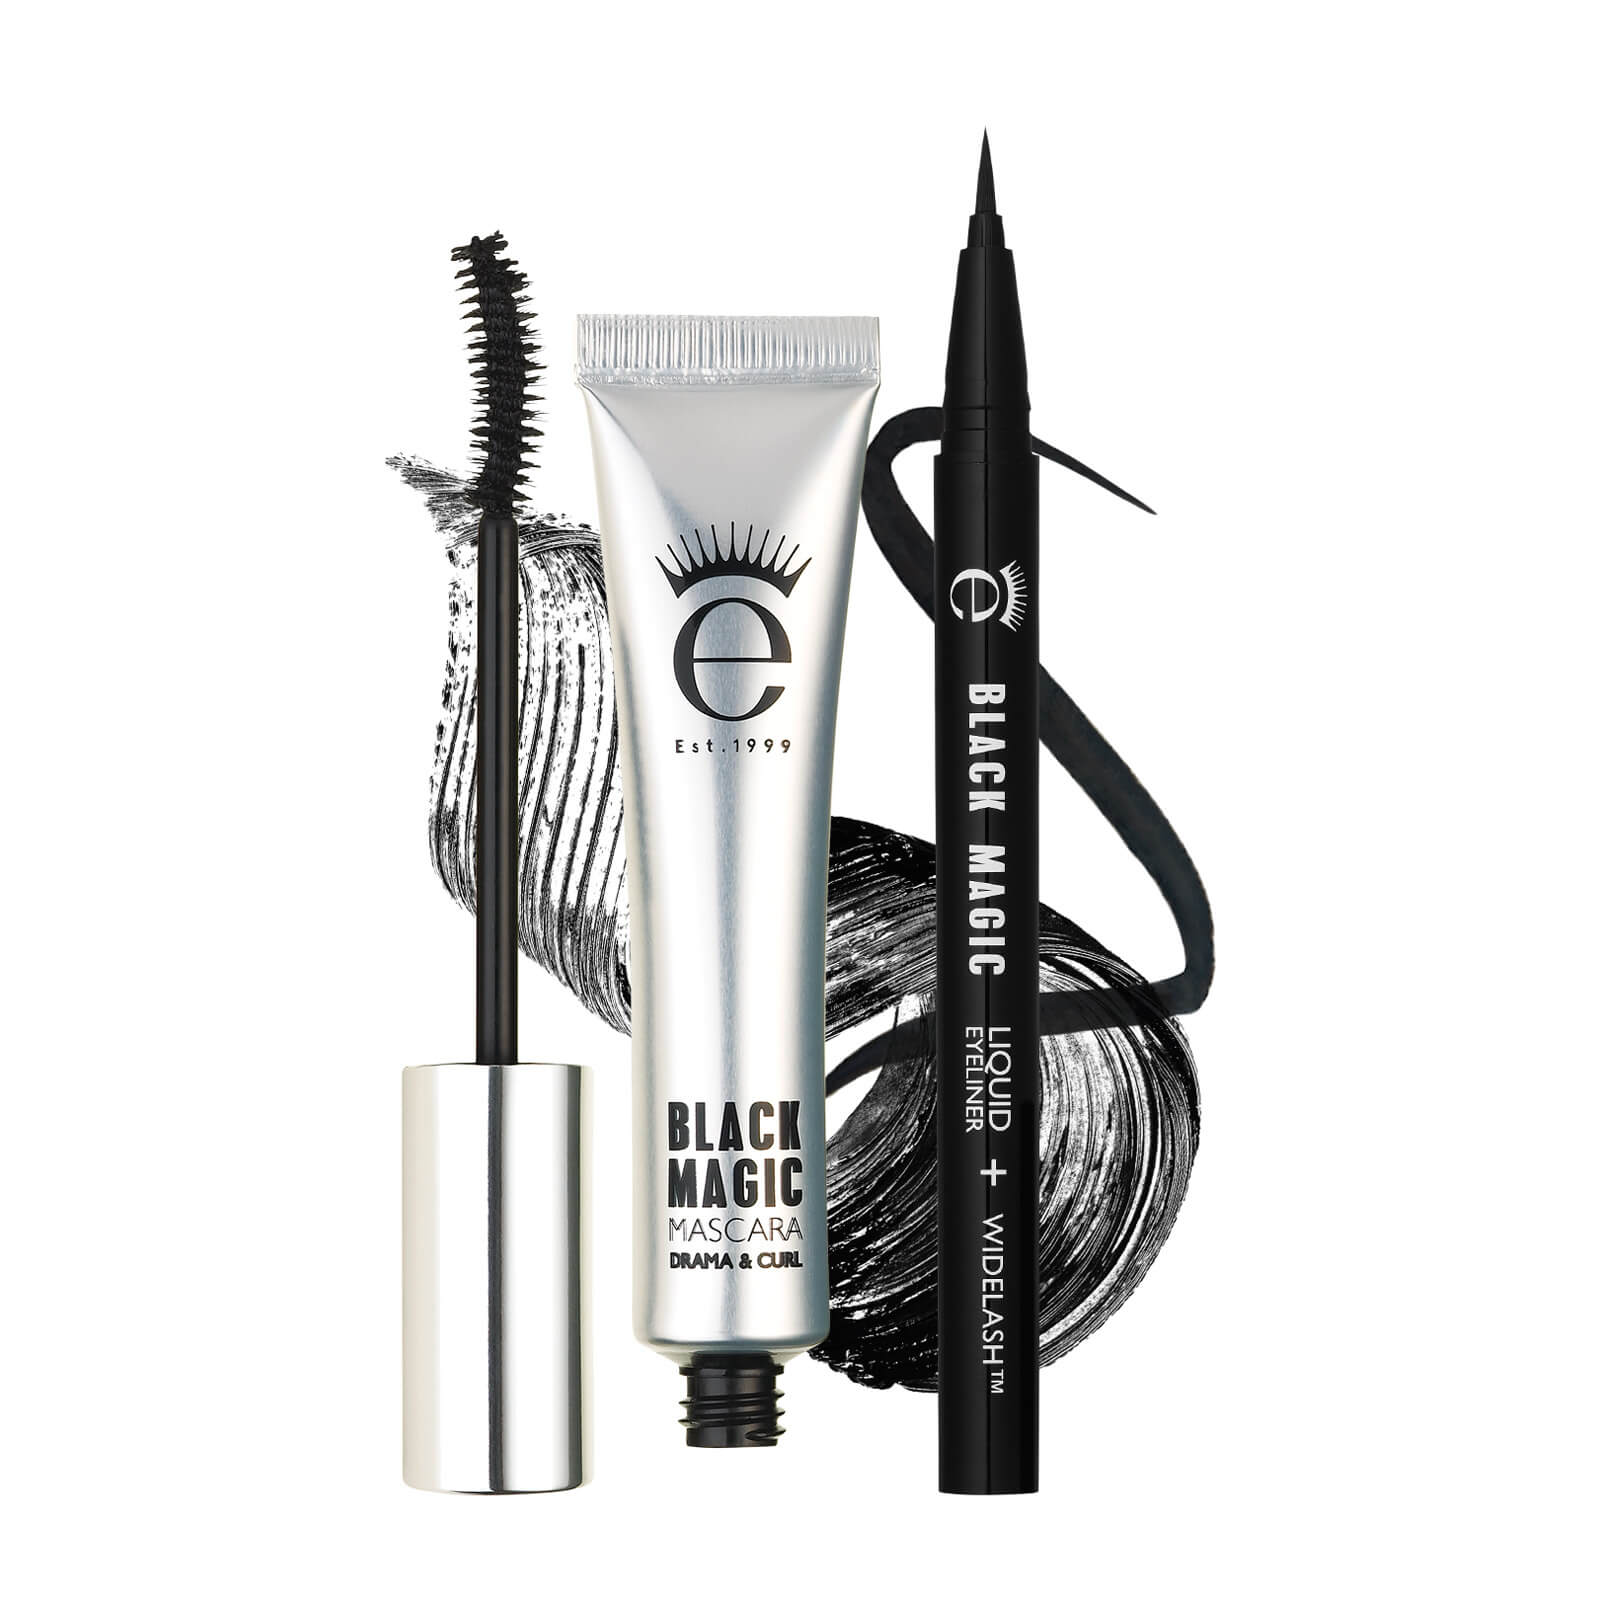 d95c171c677 Black Magic Mascara + Liquid Eyeliner | Eyeko US